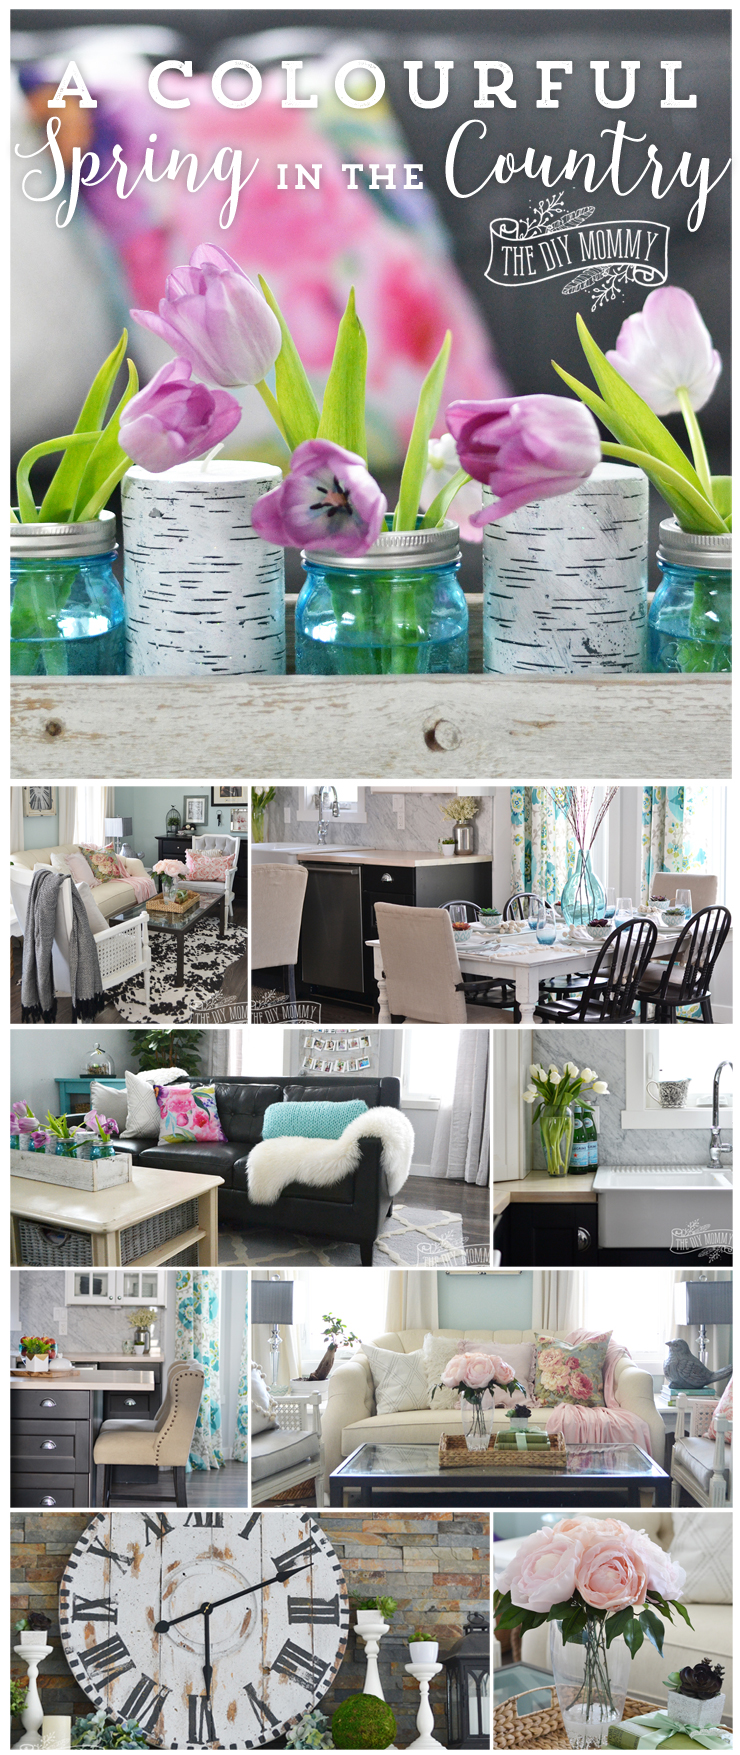 Tons of colorful and beautiful Spring home decor ideas